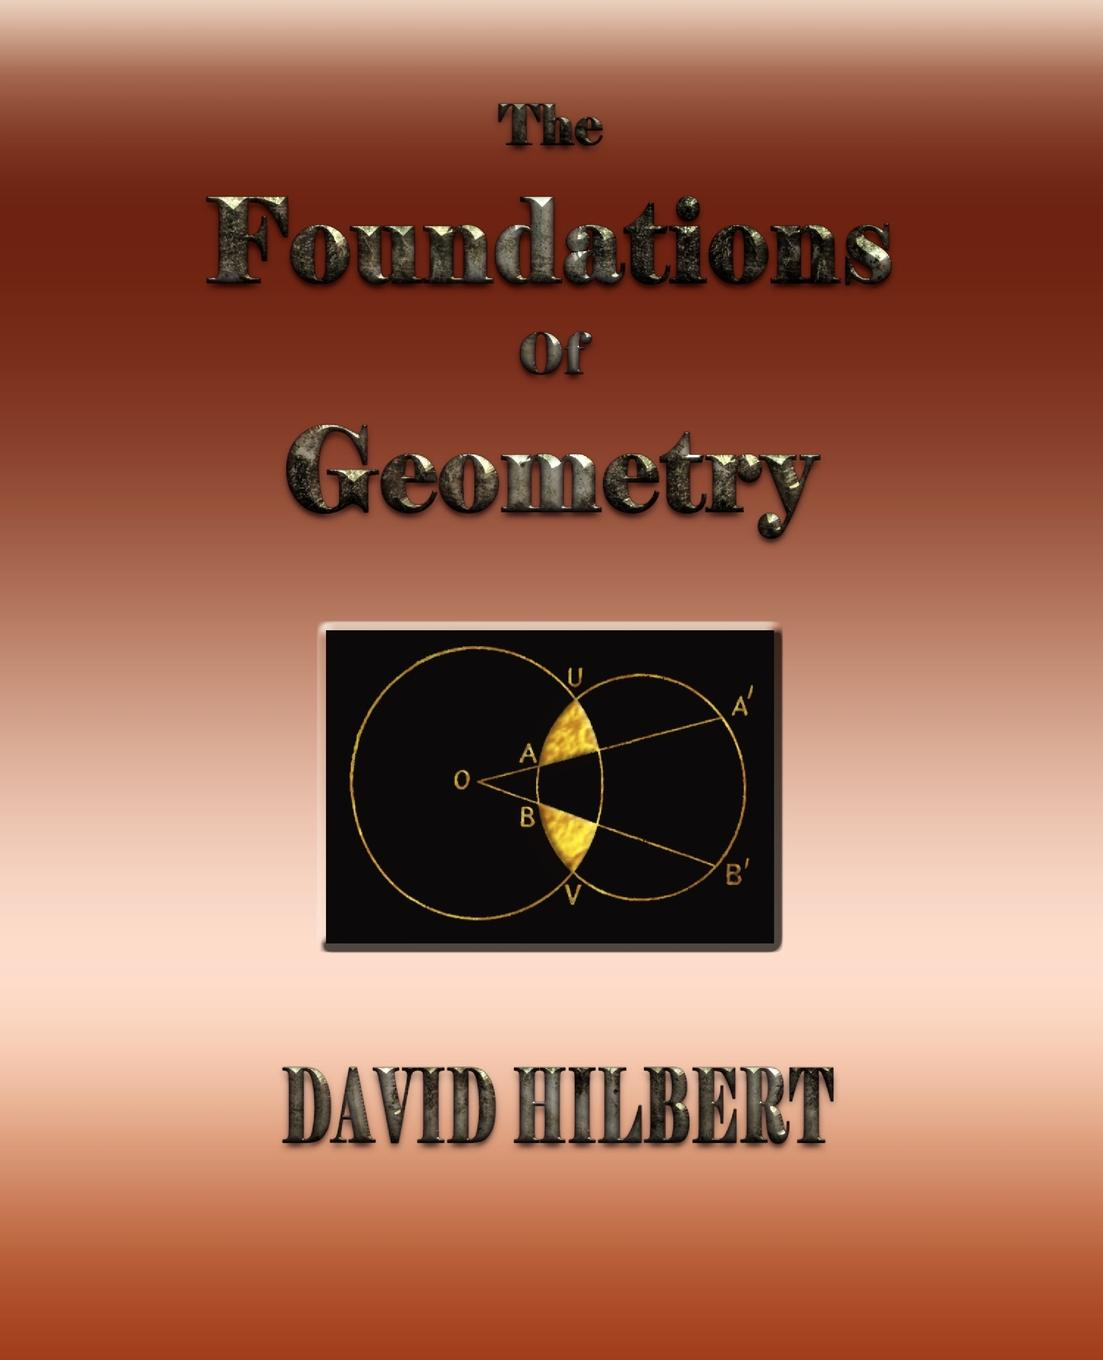 David Hilbert, E. J. Townsend The Foundations of Geometry david hilbert e j townsend the foundations of geometry